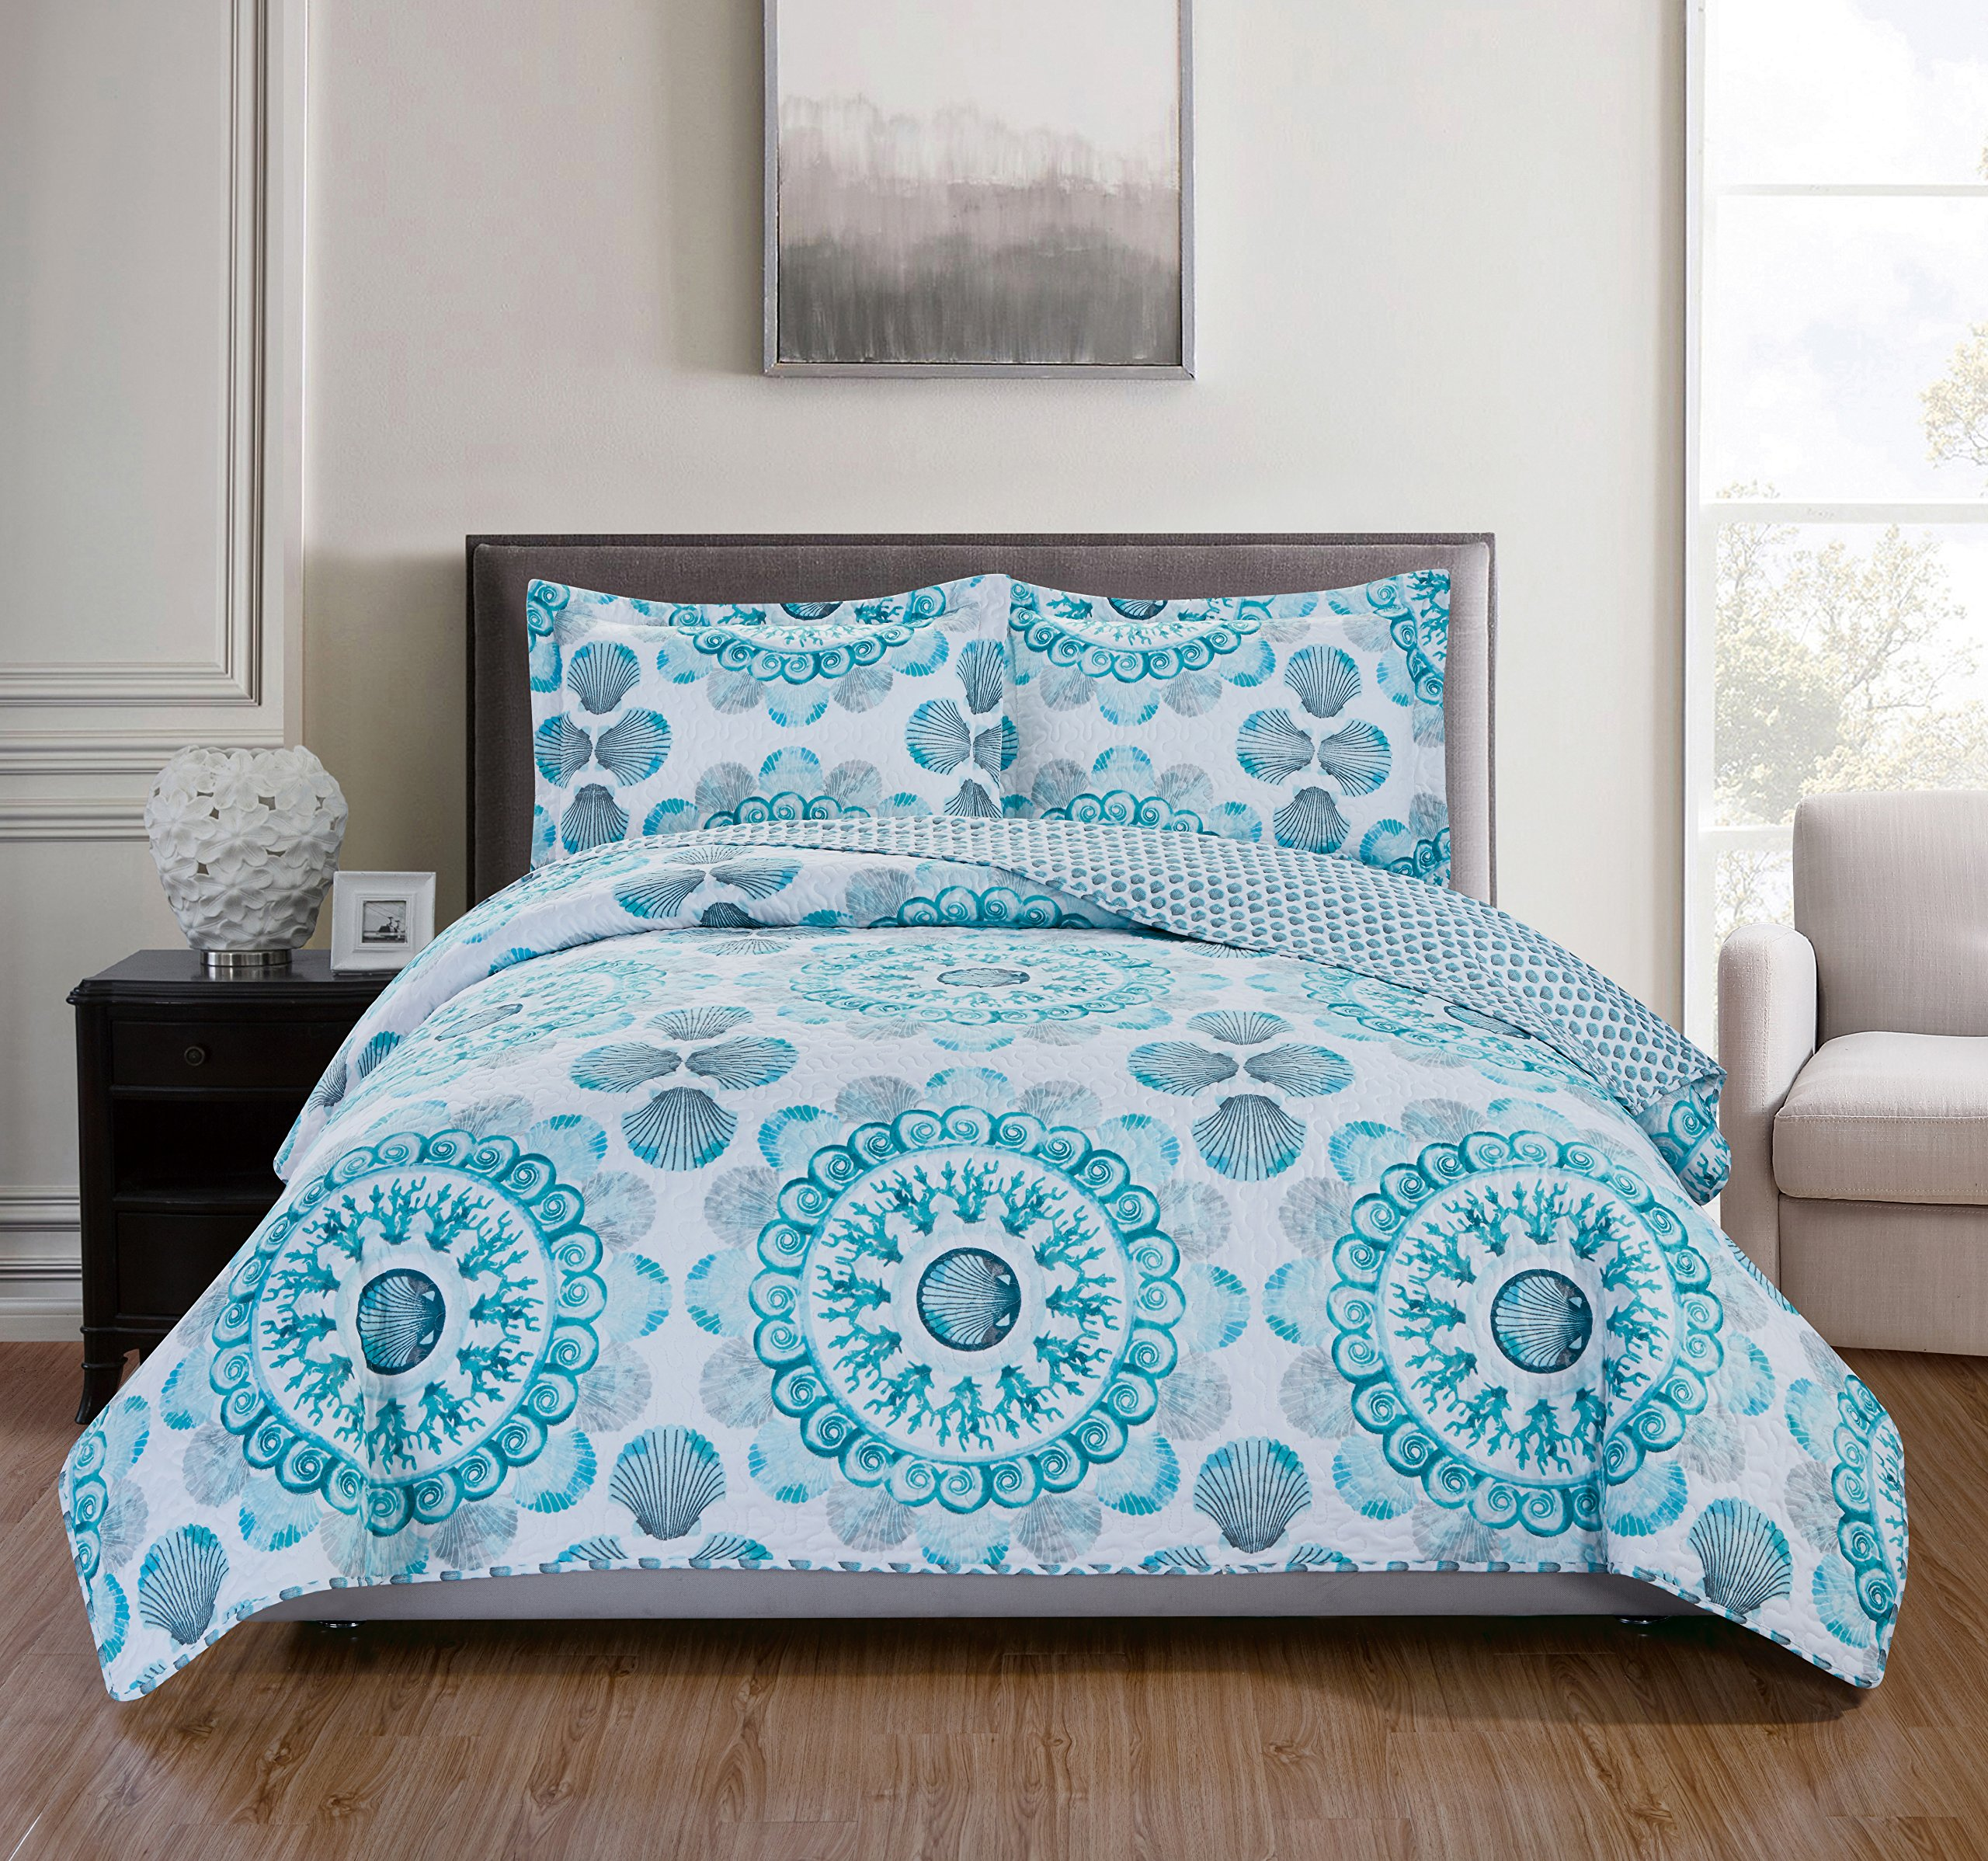 RT Designers Collection 3 Piece Jamesport Reversible Quilt Set, King, Aqua/Grey/Turquoise/White